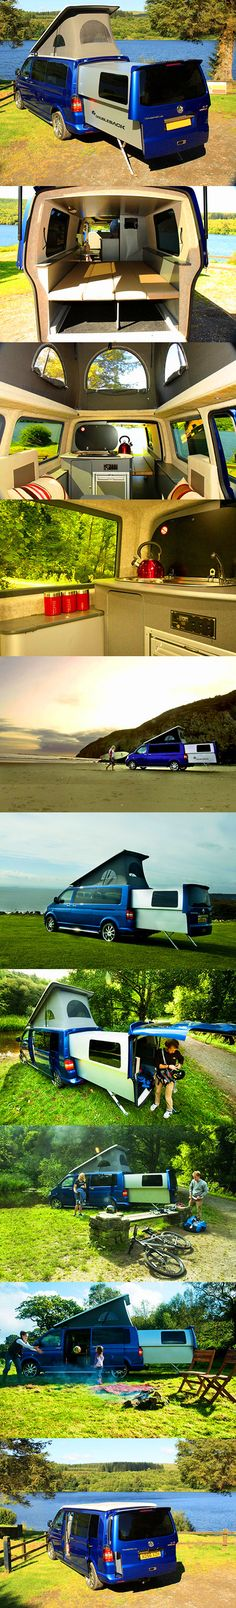 VW T5 Doubleback Camper........ I SOOO WANT THIS, PLEASE! !!!! Love it  :)